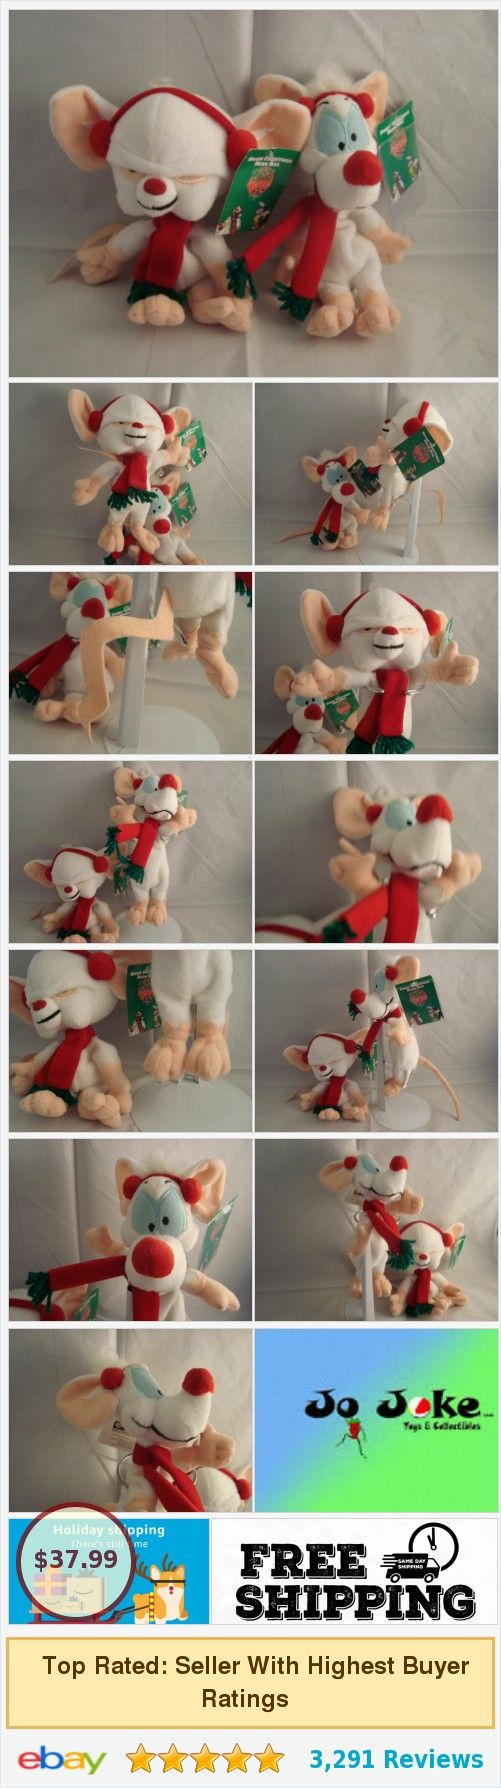 Details about WARNER BROS STUDIO STORE-PINKY&THE BRAIN-9-8-BEAN PLUSH SET-NEW/TAGS-UNIQUE #warnerbros